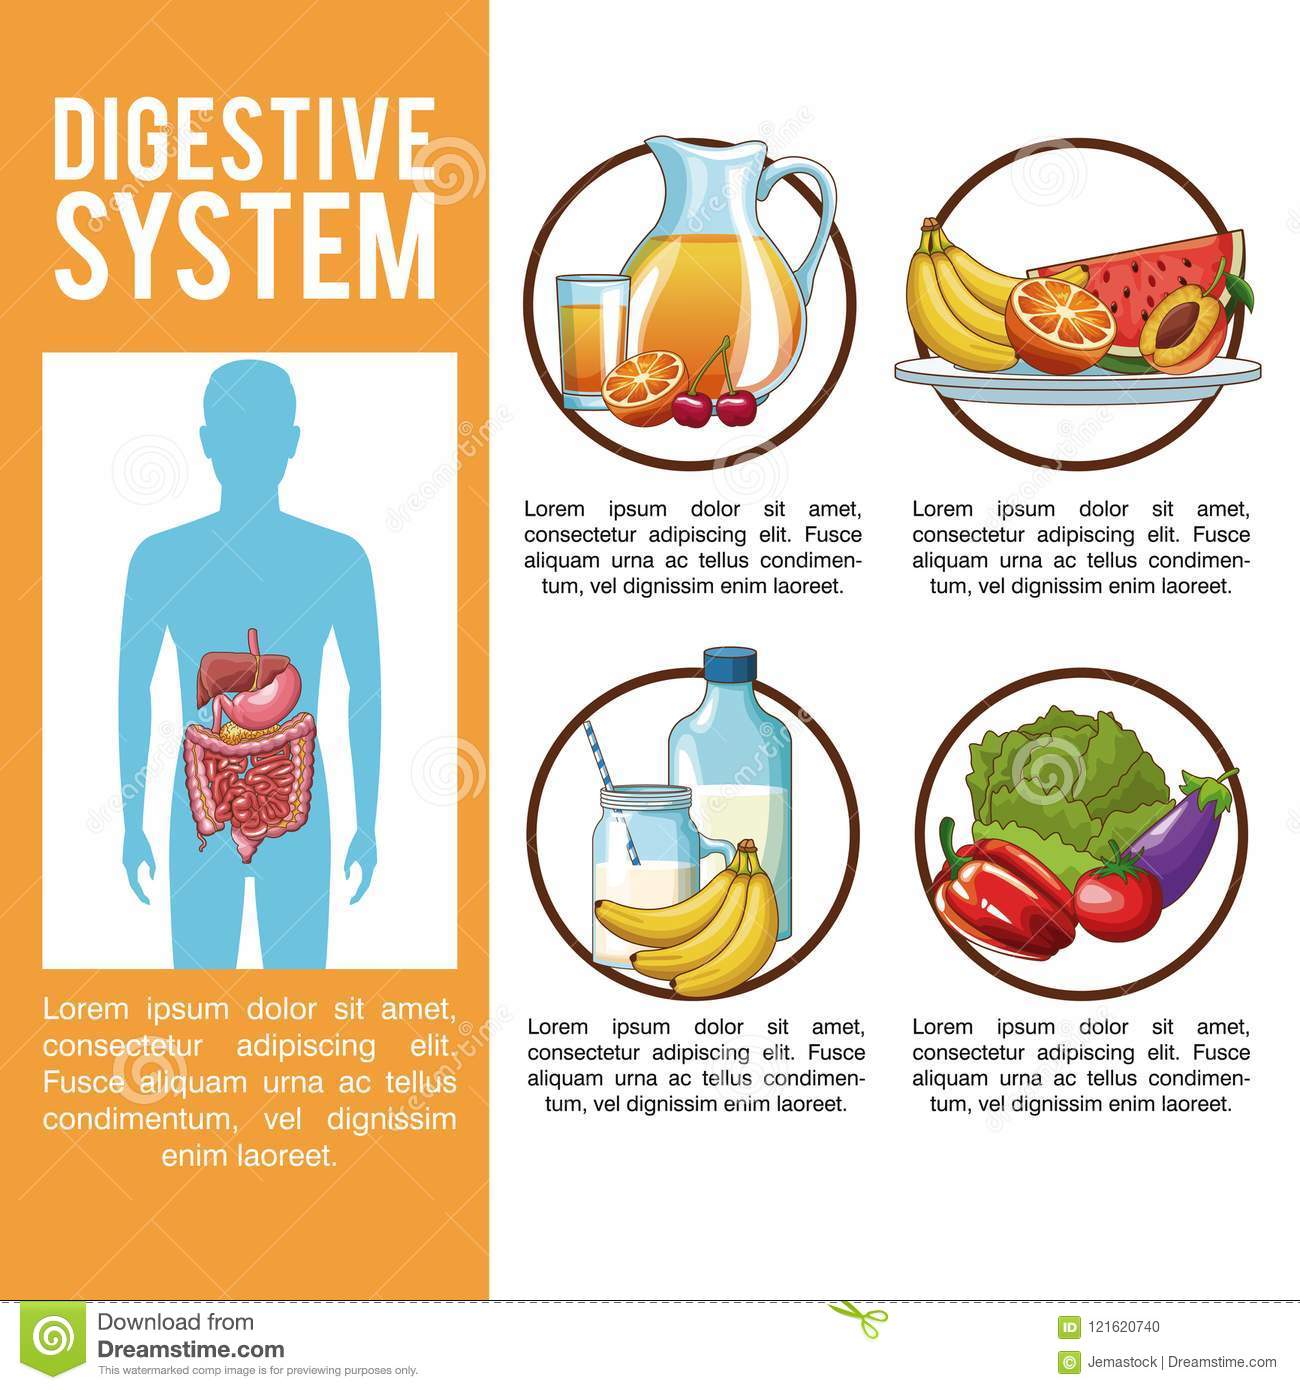 Digestive System Poster Stock Vector Illustration Of Healthy